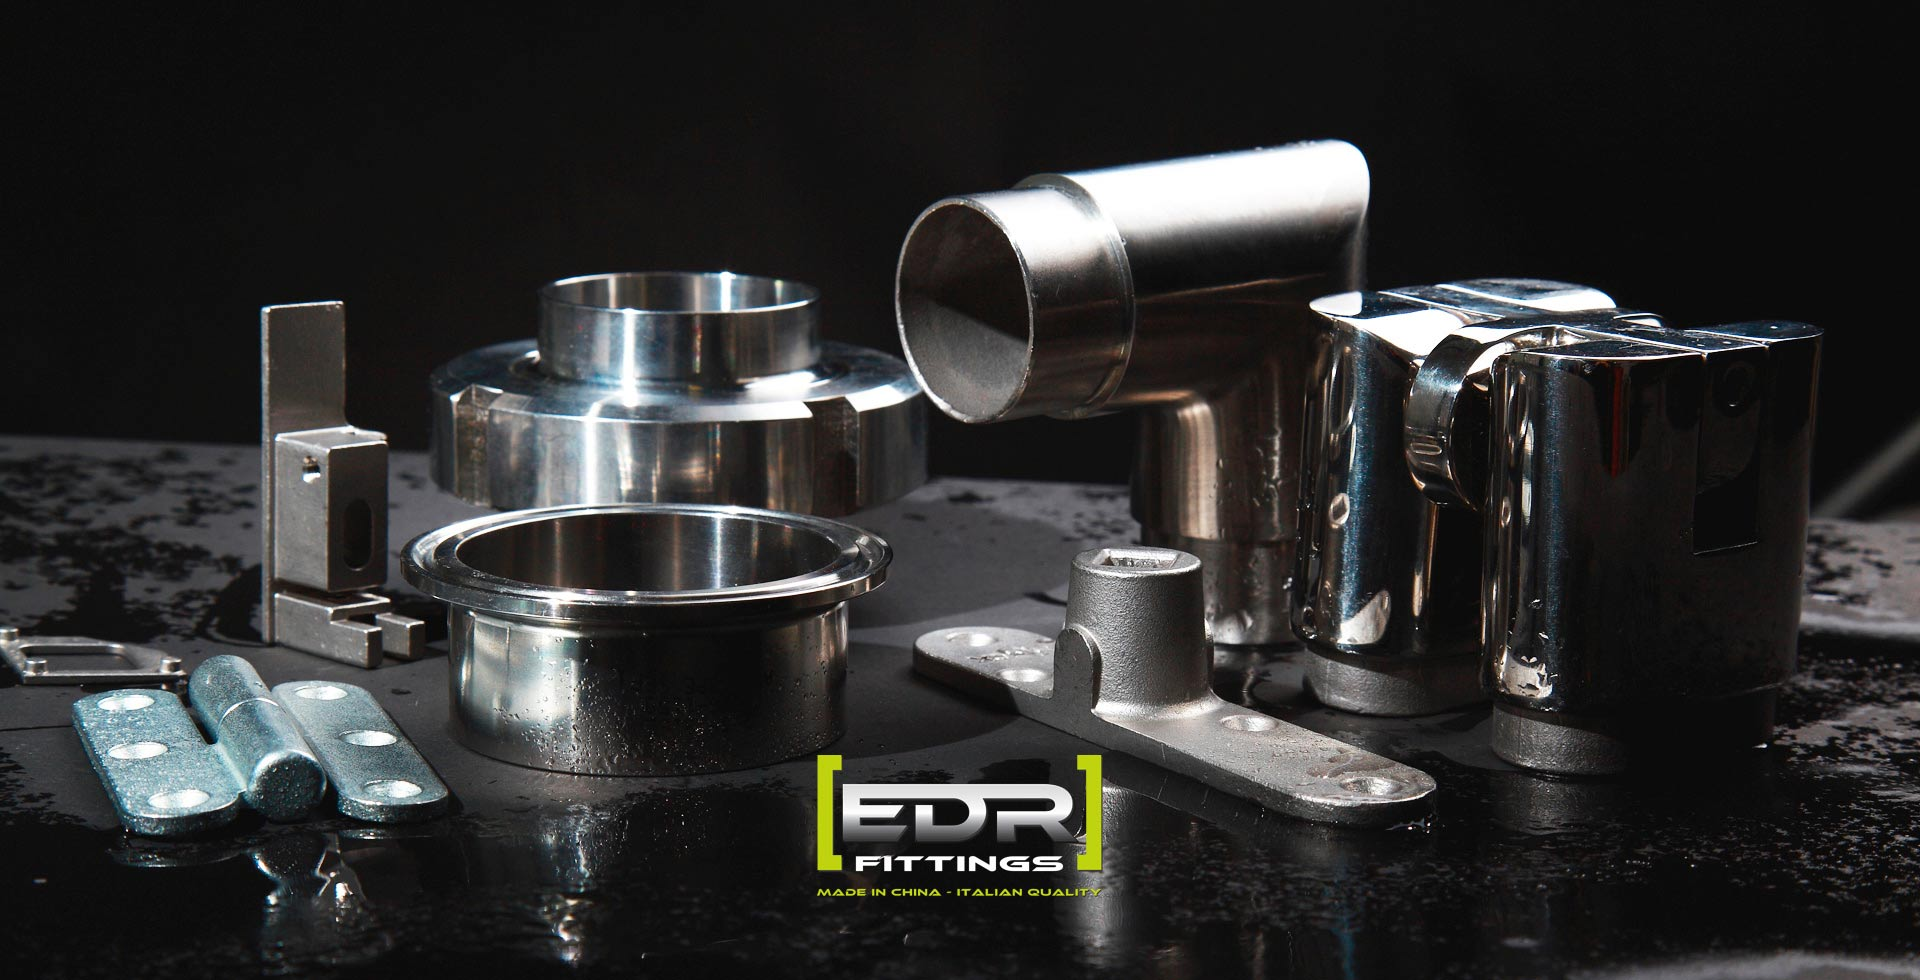 Edr Fittings